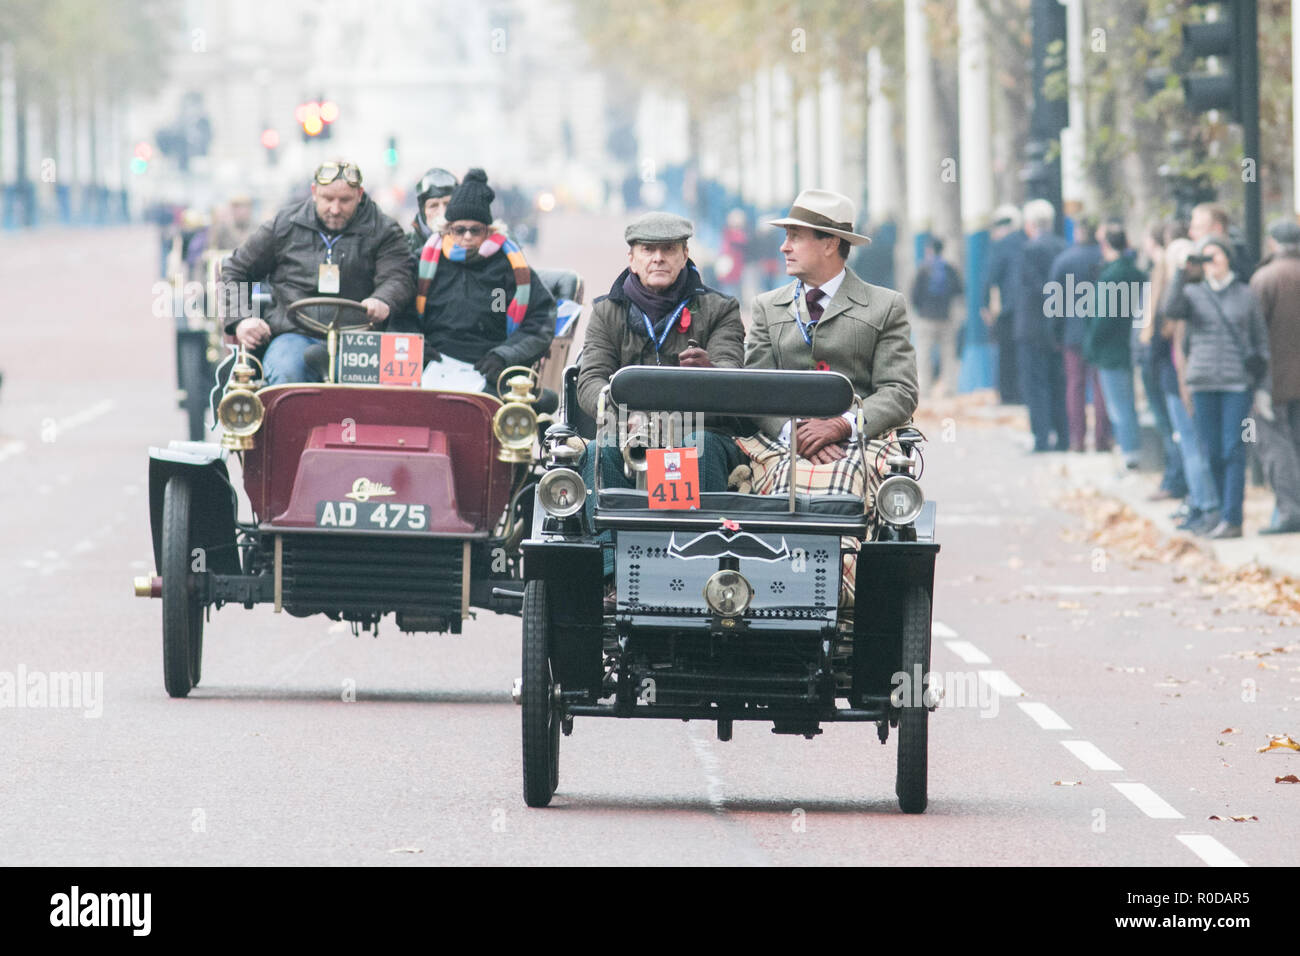 London UK. 4th November 2018 . Participants in  Pre 1905 four-wheeled cars  and antique automobiles drive down The Mall as they take part in the Bonhams London to Brighton 60 mile journey in the Veteran Car Run, the world's longest running motoring event.The Run commemorates the Emancipation Run of 14 November 1896, which celebrated the Locomotives on the Highway Act, when the speed limit for 'light locomotives' was raised from 4 mph to 14 mph, abolishing the need for vehicles to be preceded by a man on foot Credit: amer ghazzal/Alamy Live News - Stock Image